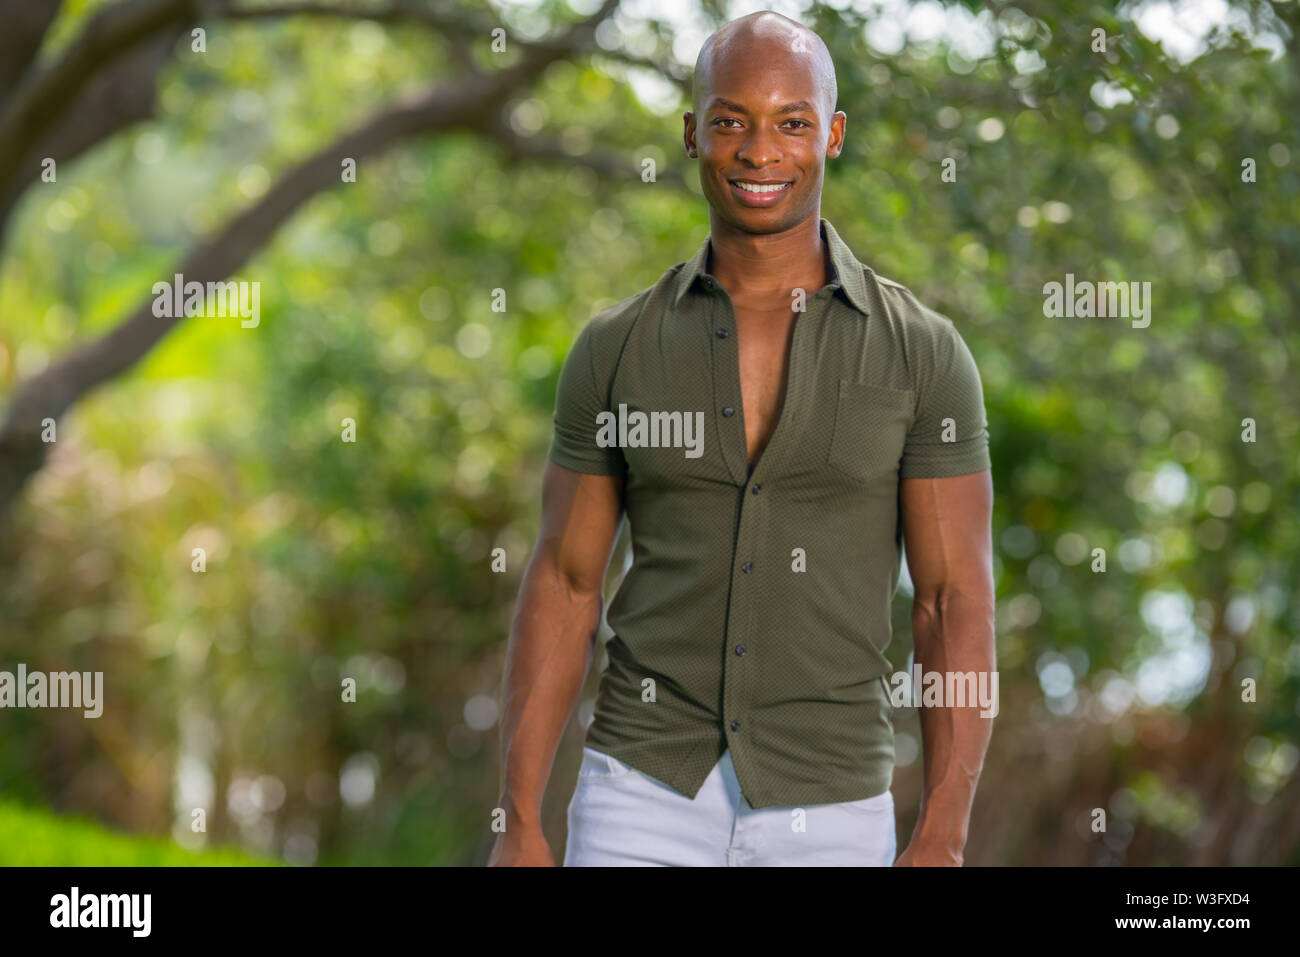 Handsome man posing in stylish clothing at a park scene in summer - Stock Image